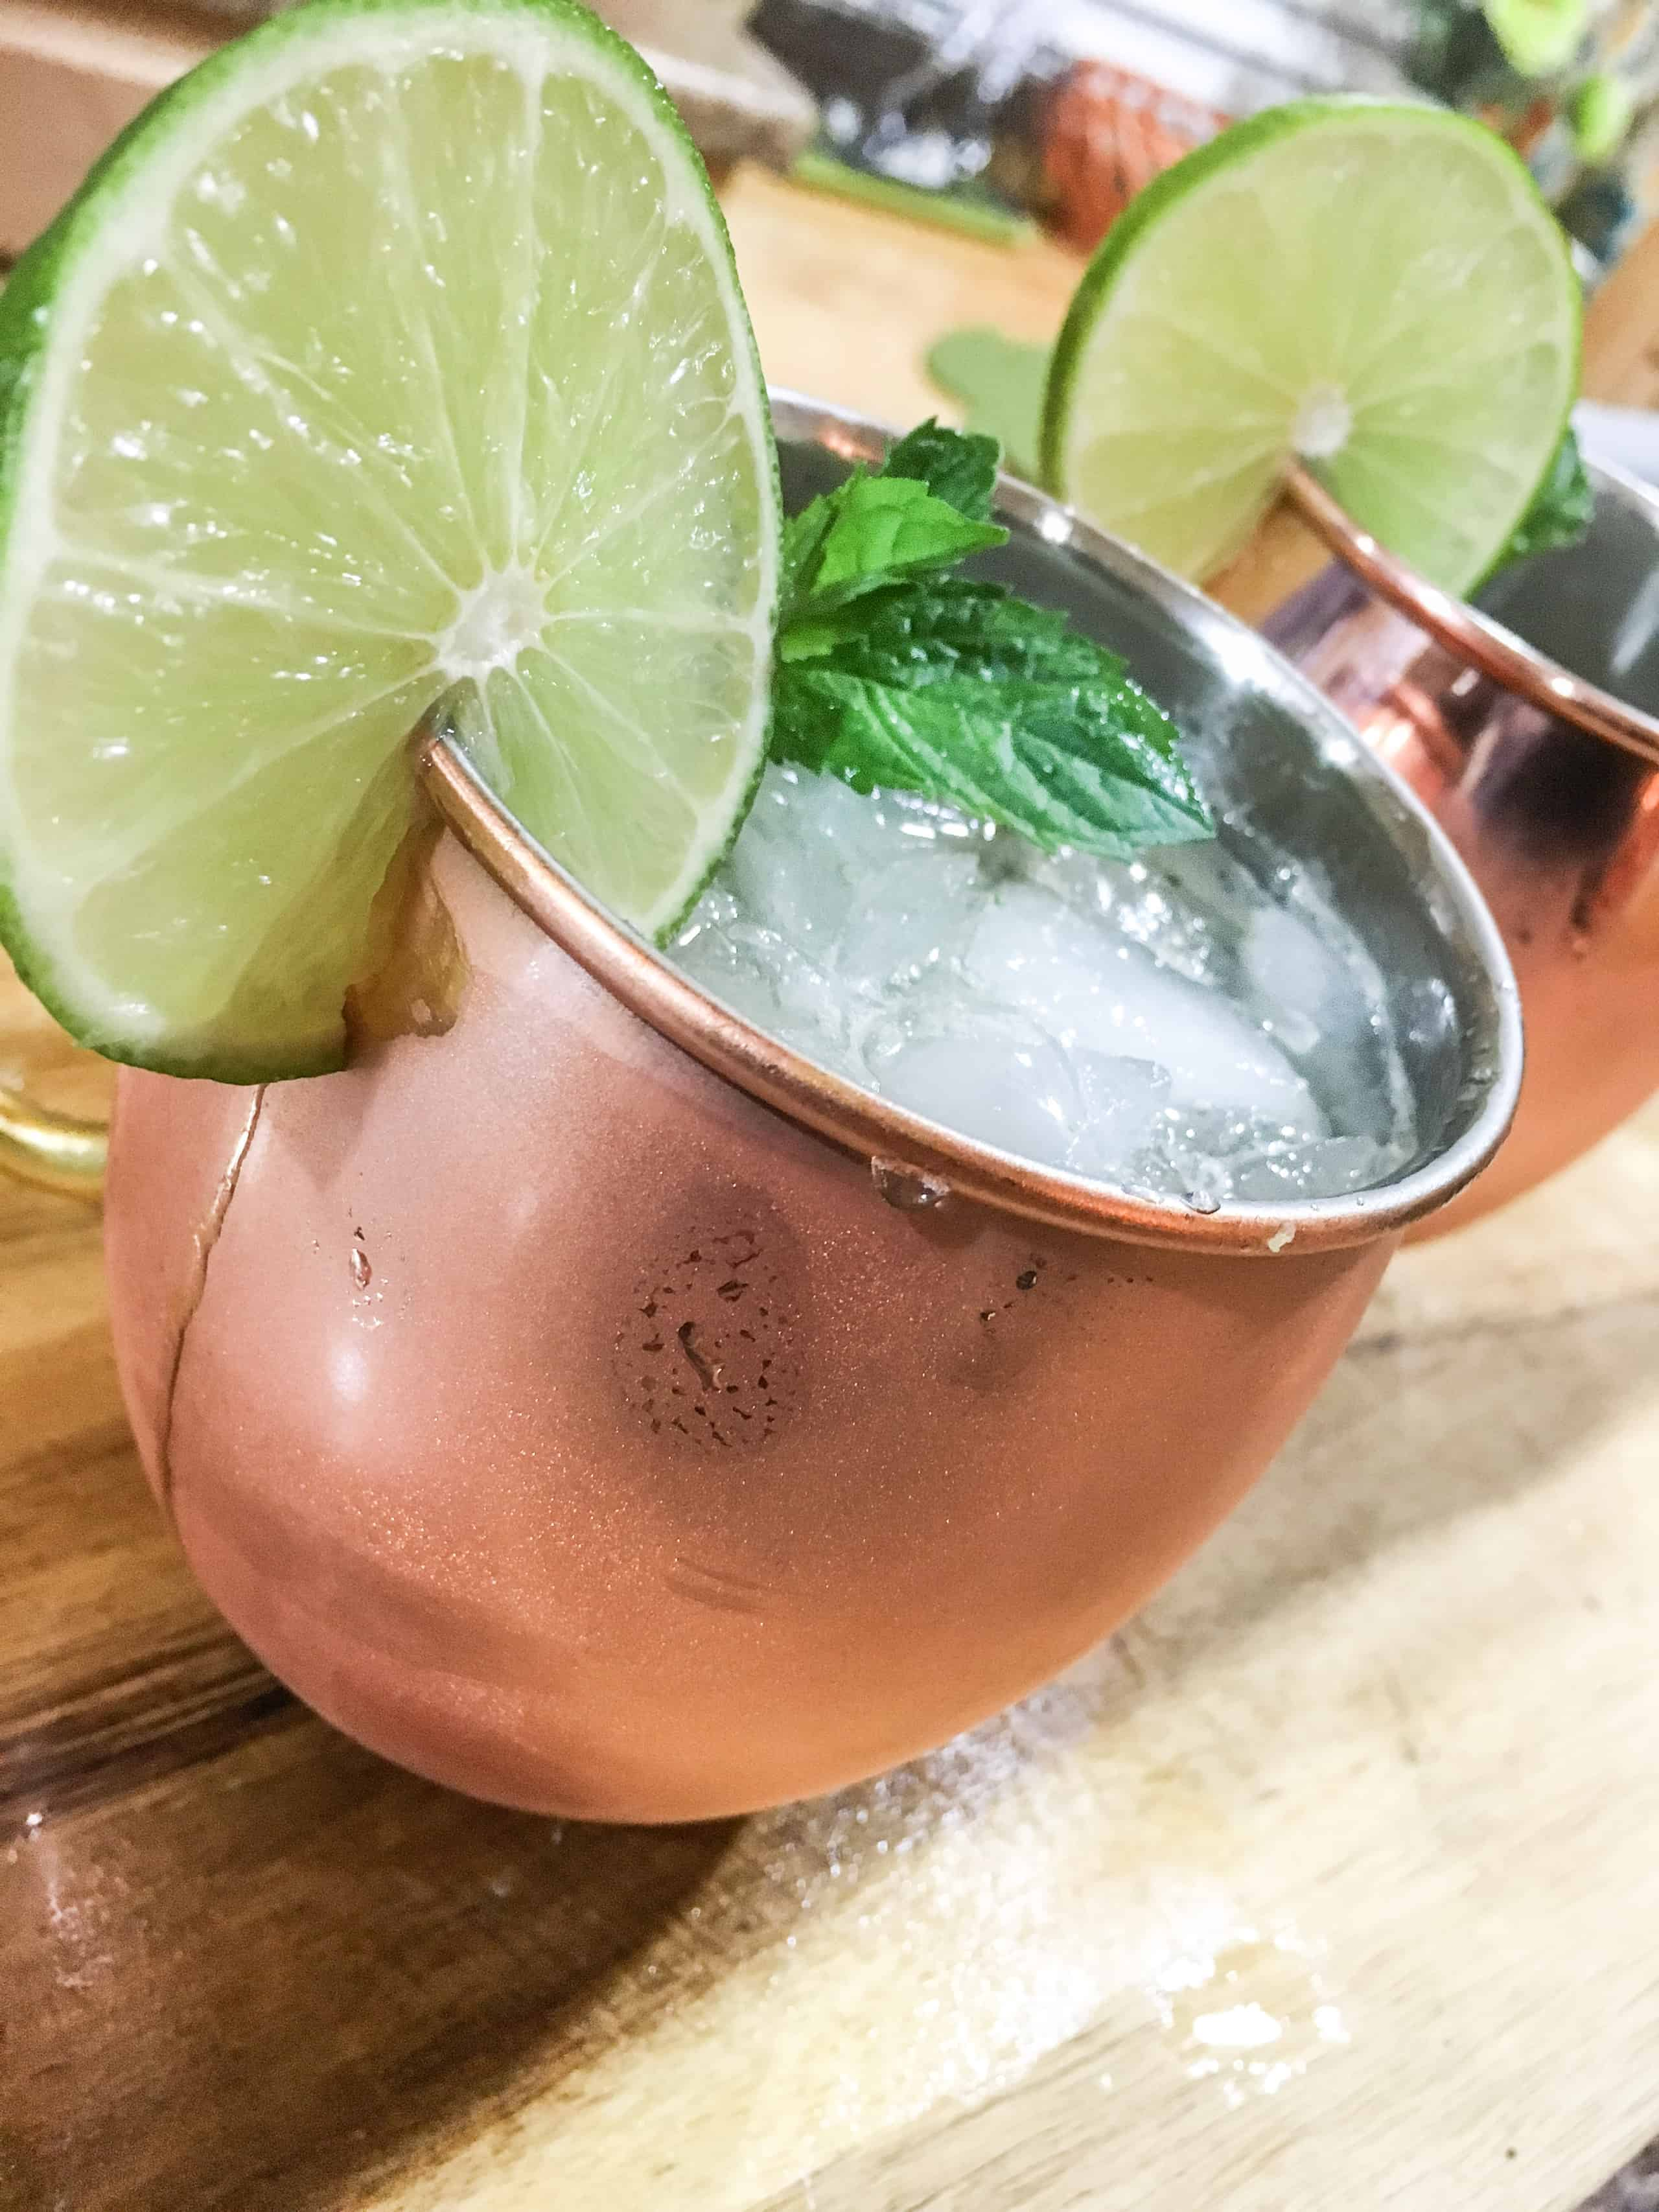 A Kentucky Mule is the perfect summer drink with aromatic mint and a kick of spice from ginger beer. Beyond refreshing!